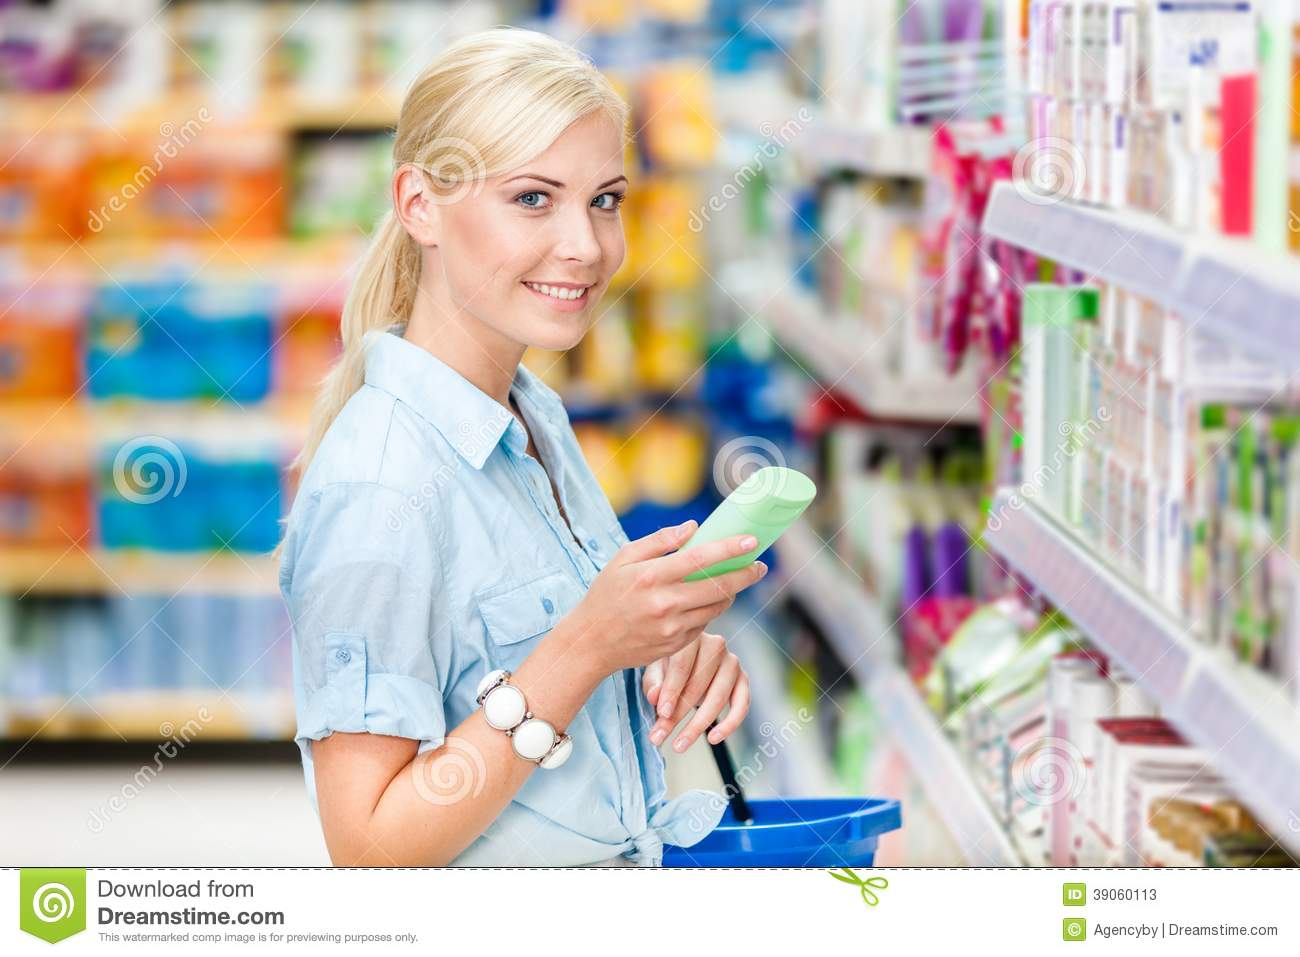 Half length portrait of girl at the shop choosing cosmetics